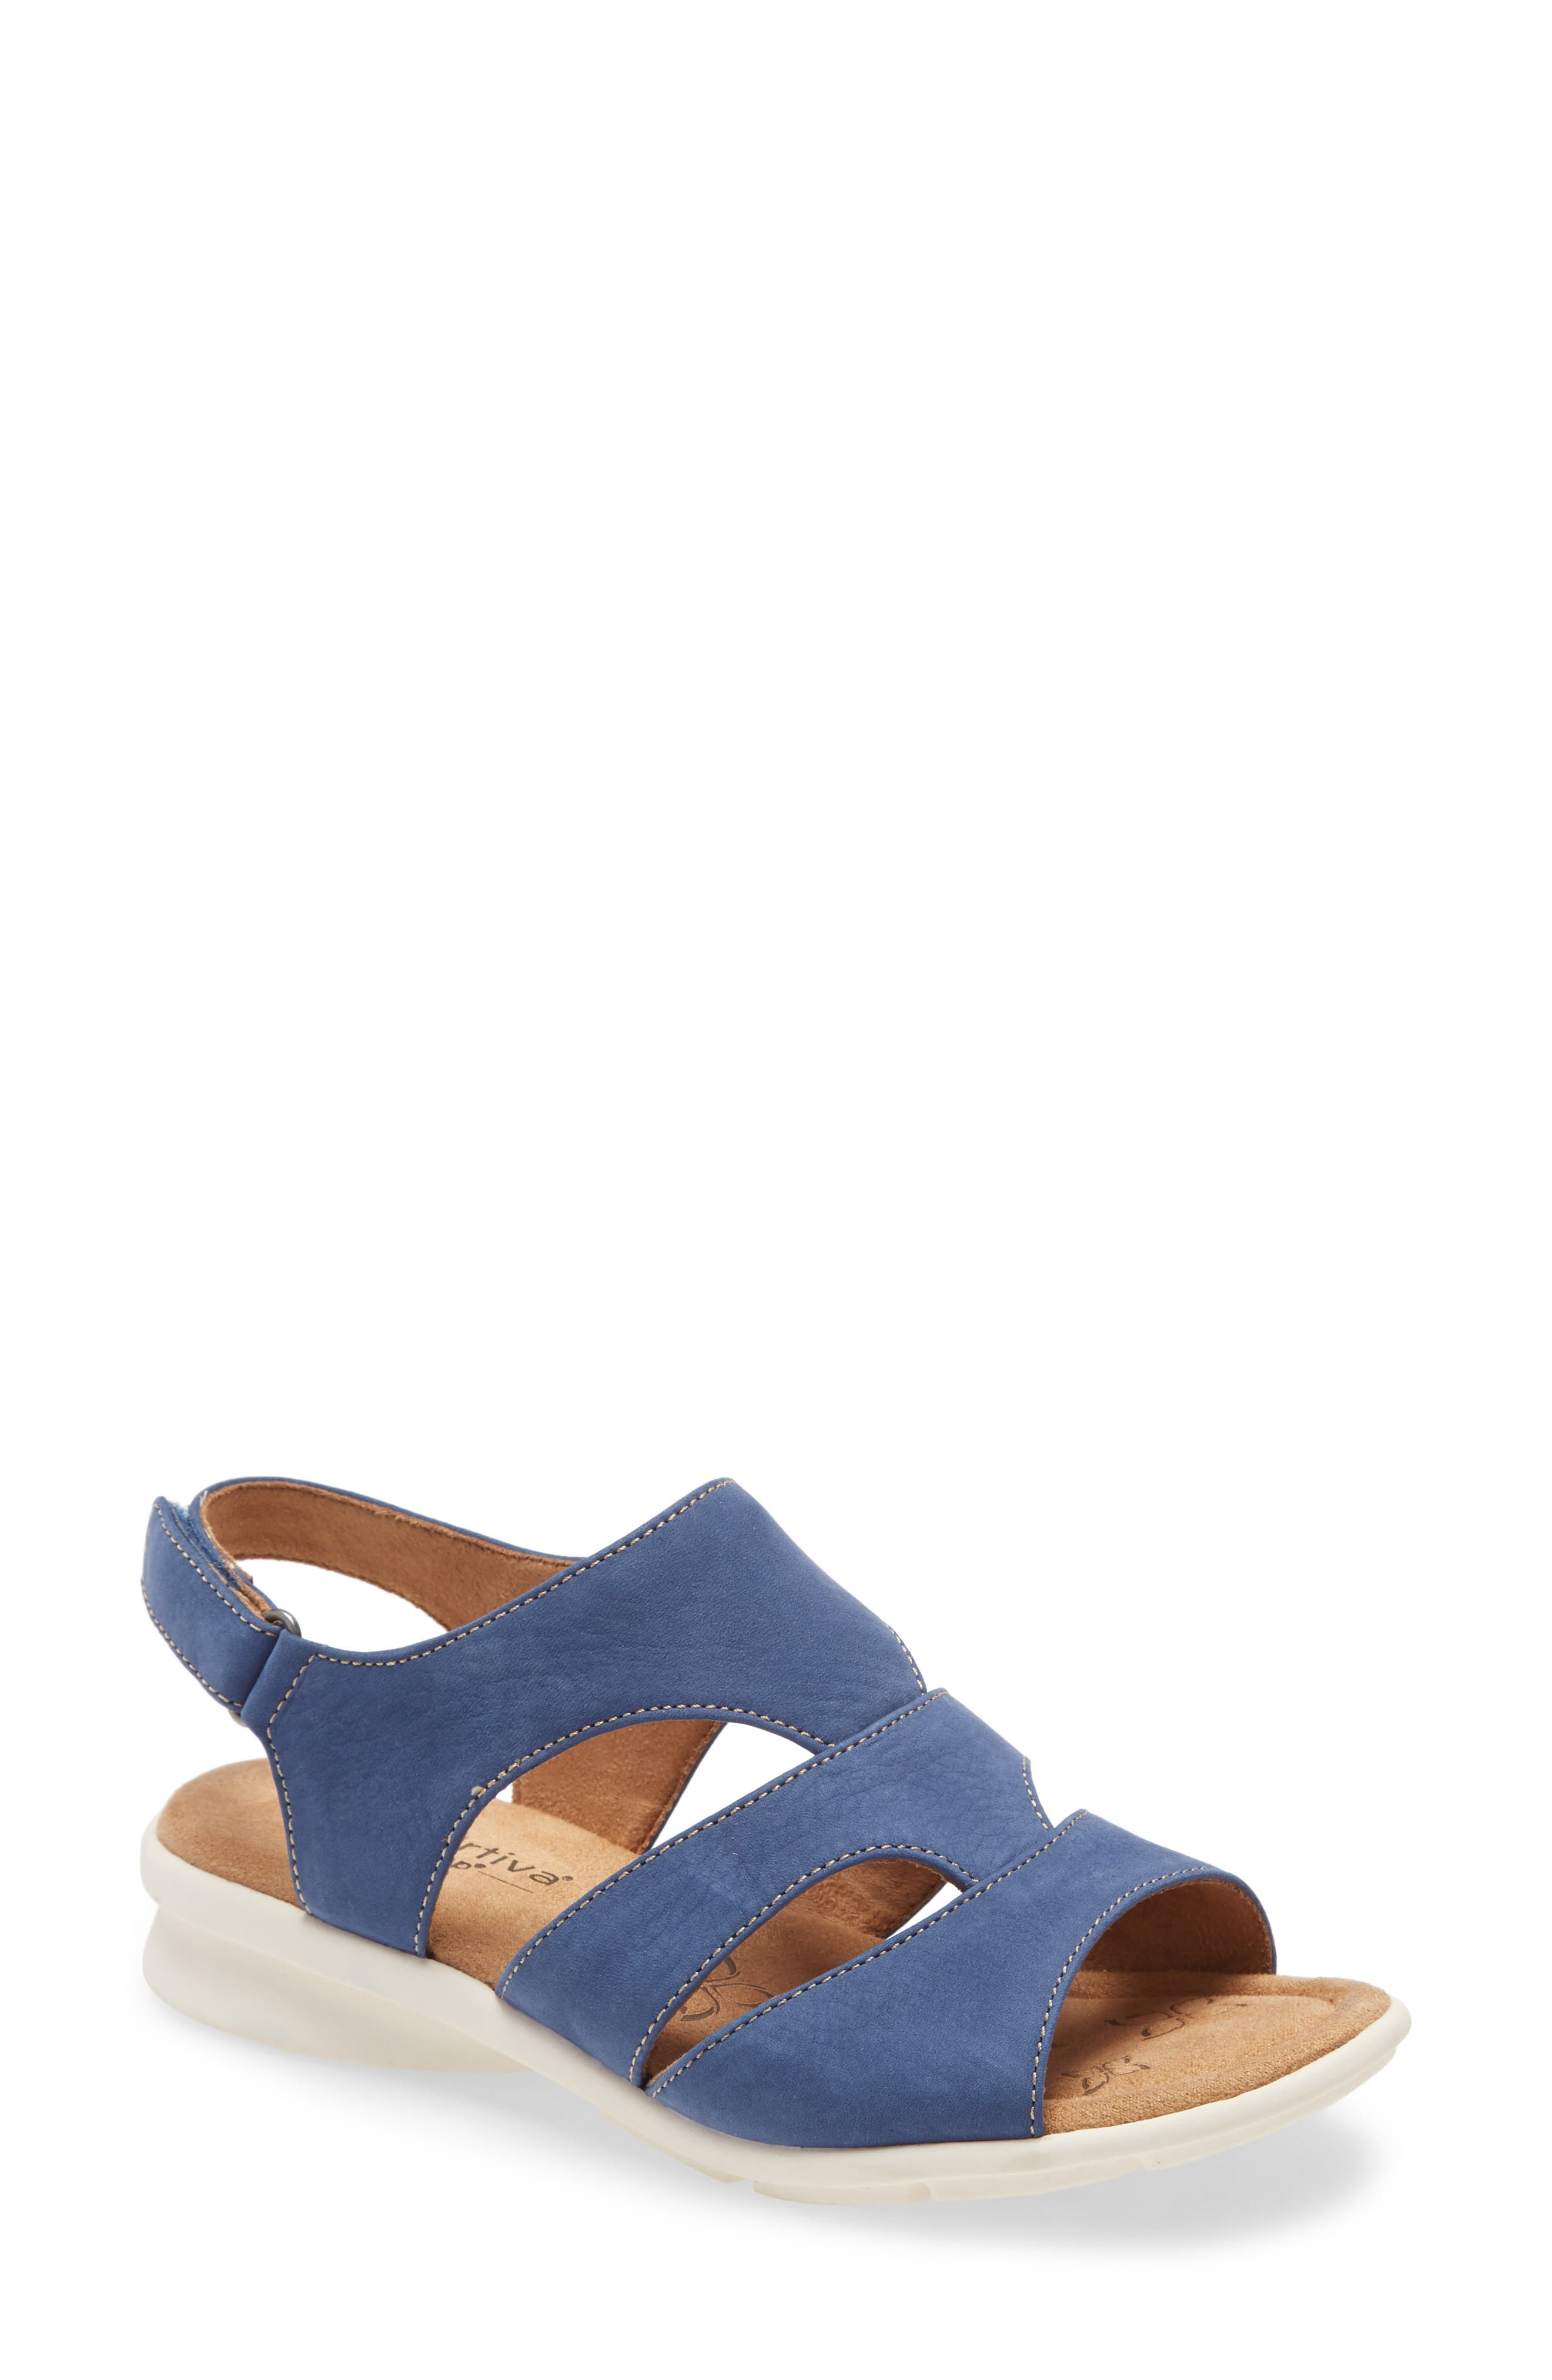 Comfortiva\\\'s Pillowtop memory foam-cushioned footbed adds exceptional comfort to a strappy walking sandal lifted by a sturdy sole. Style Name: Comfortiva Parma Sandal (Women). Style Number: 5996192. Available in stores.